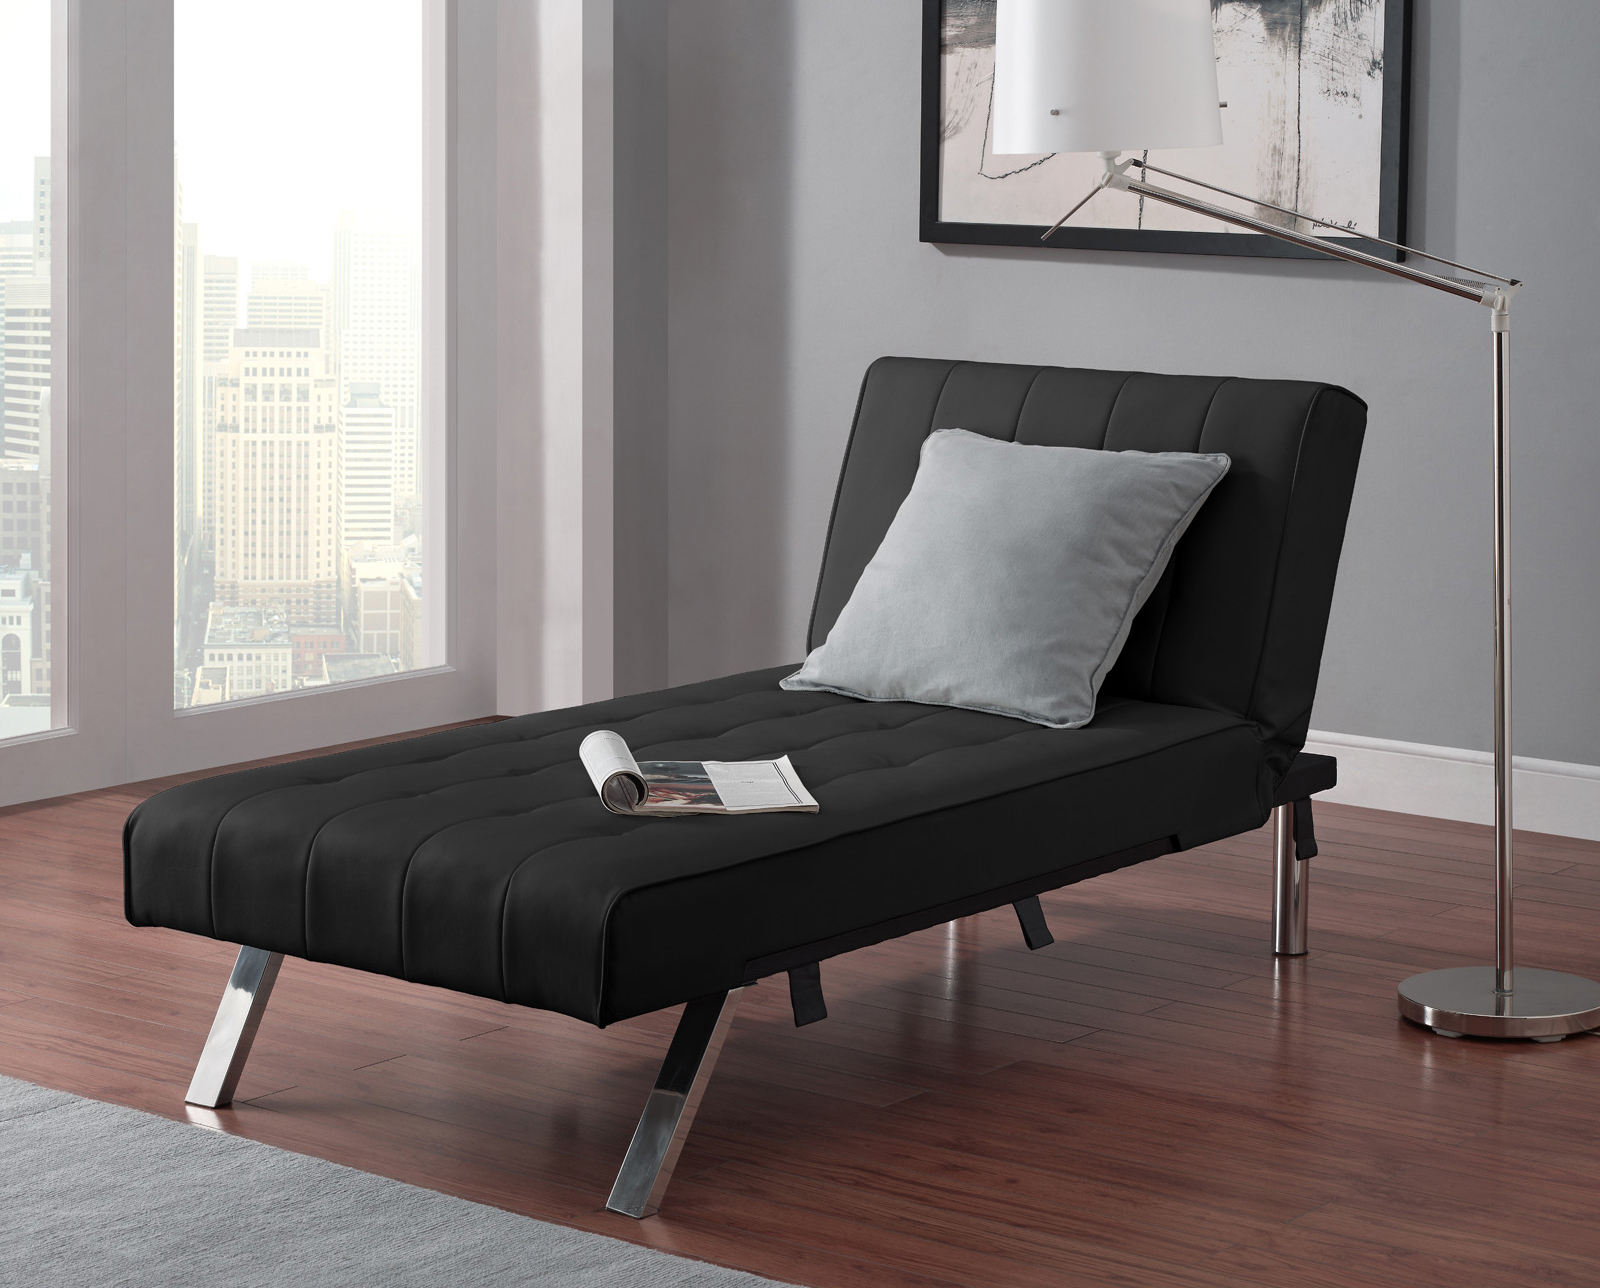 Chaiselongue Modern 12 Of The Best Looking Modern Chaise Lounges Apartment Therapy